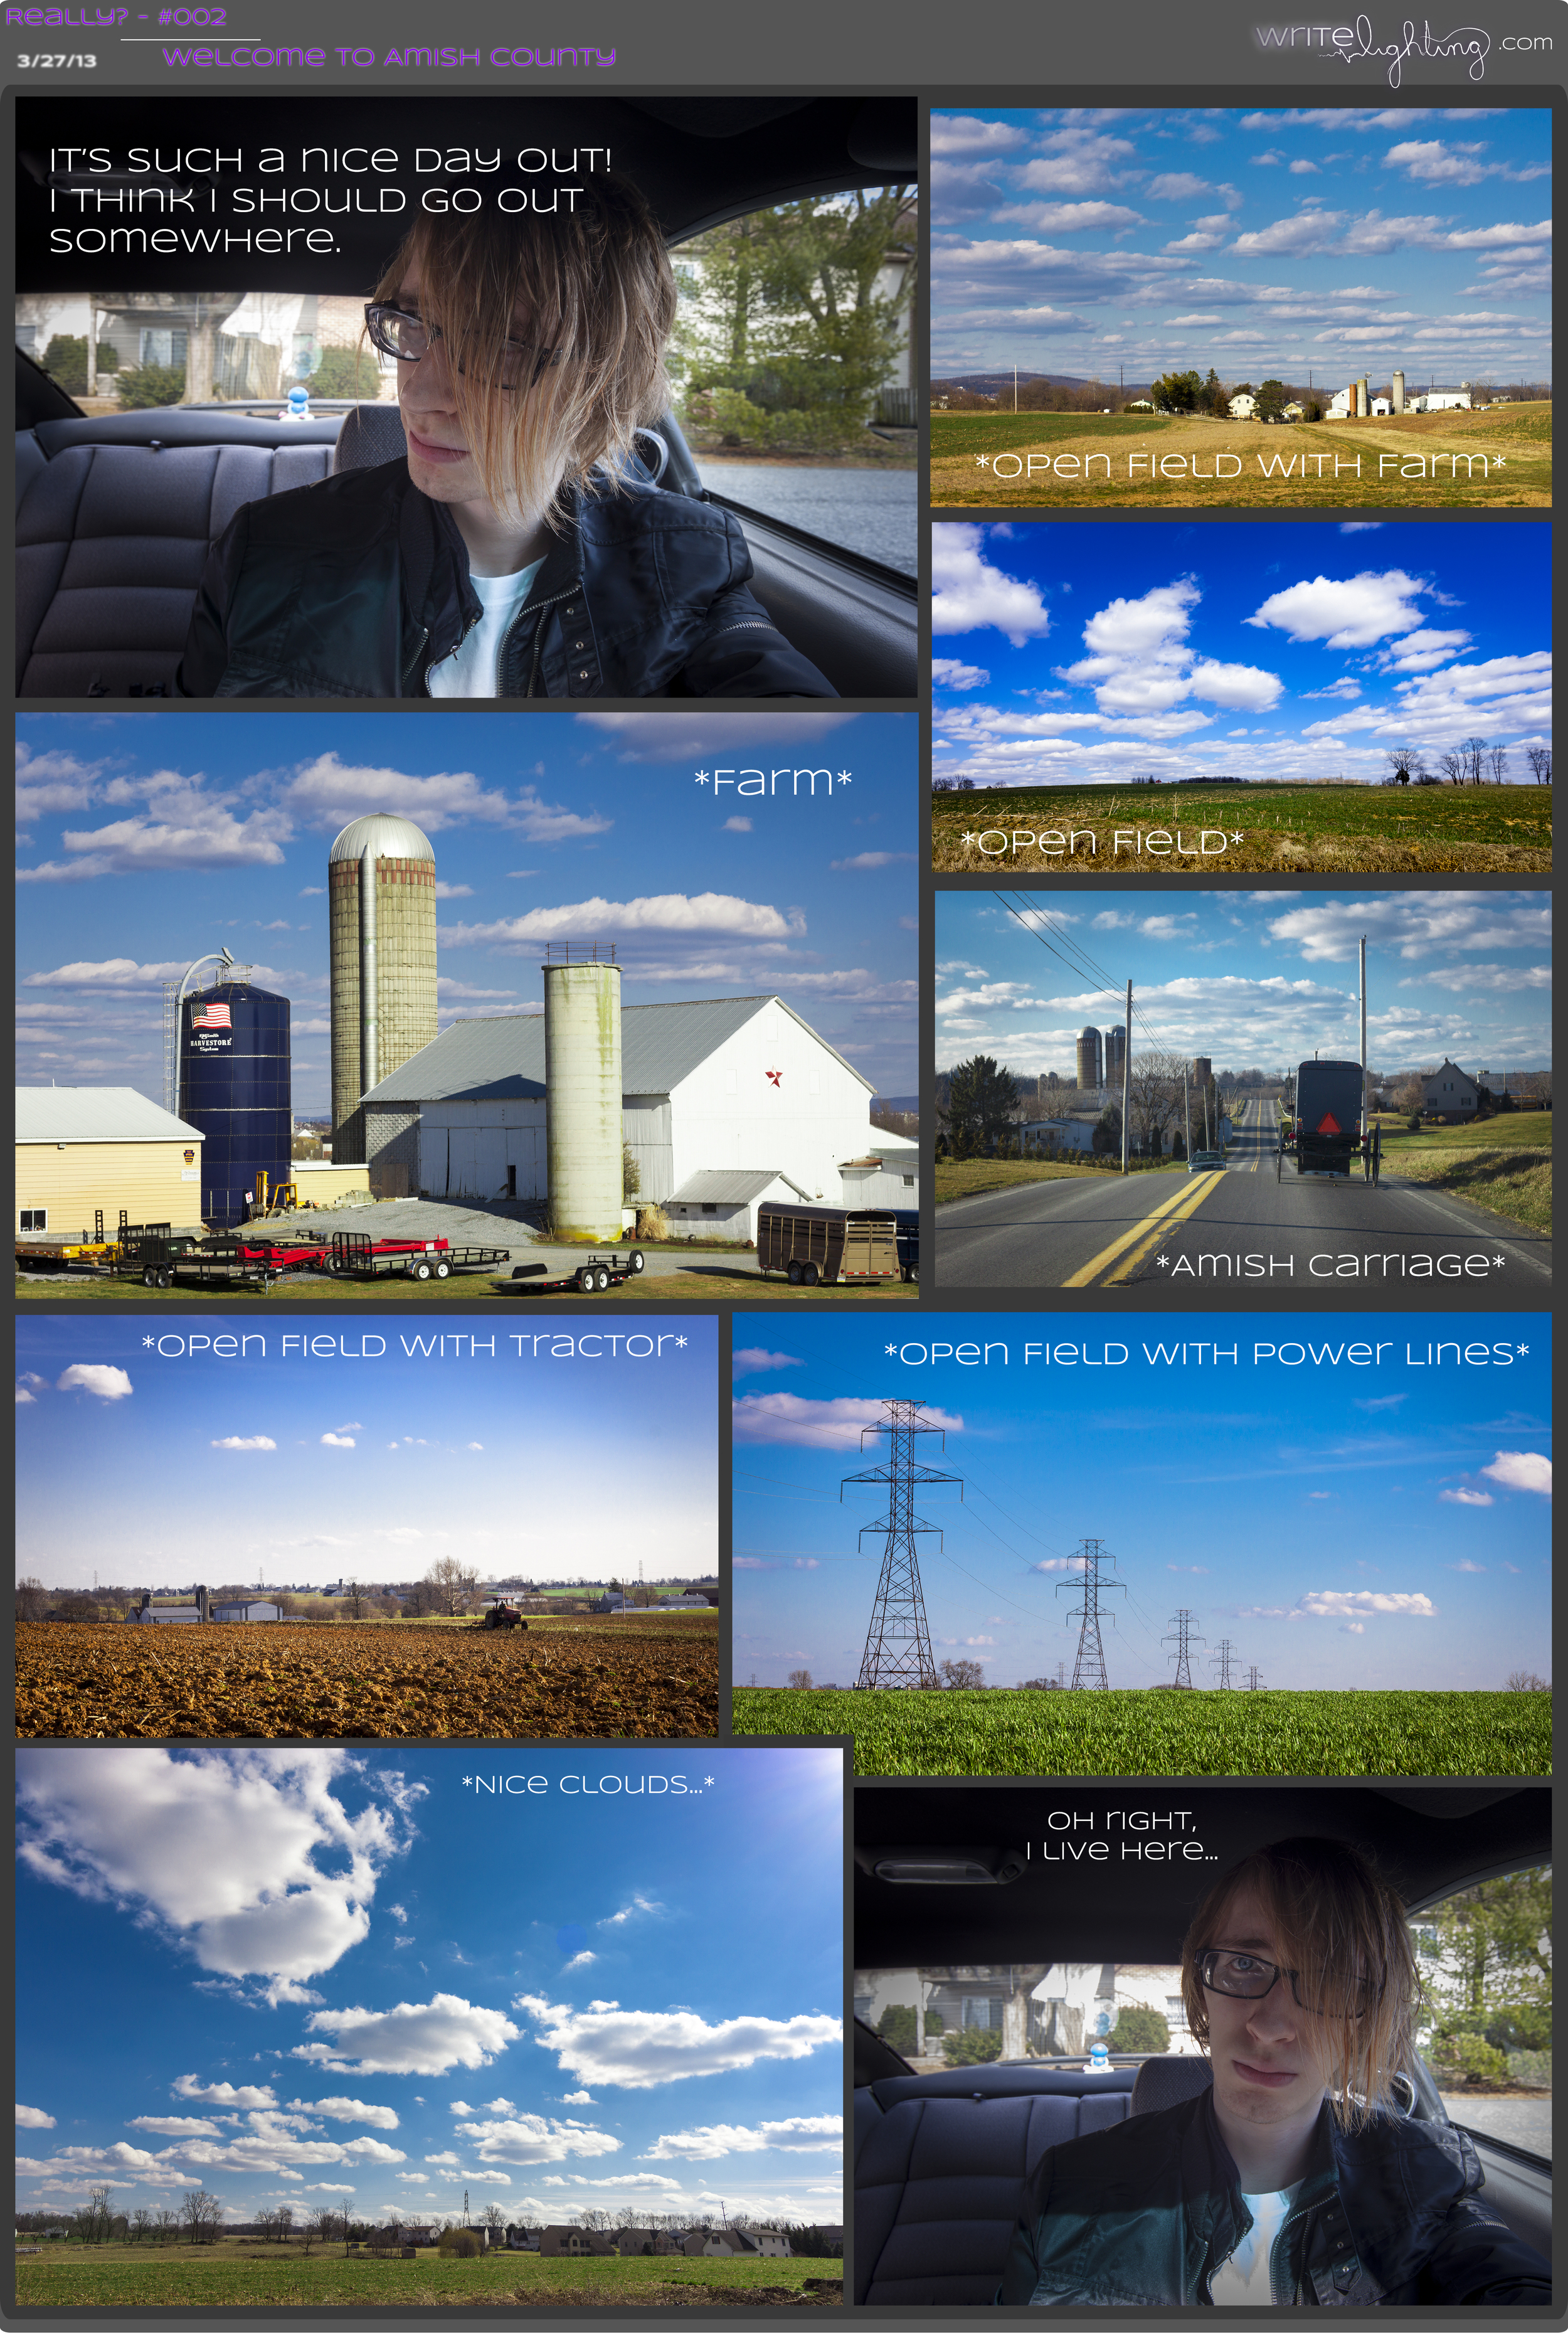 002 - Welcome to Amish County2.jpg